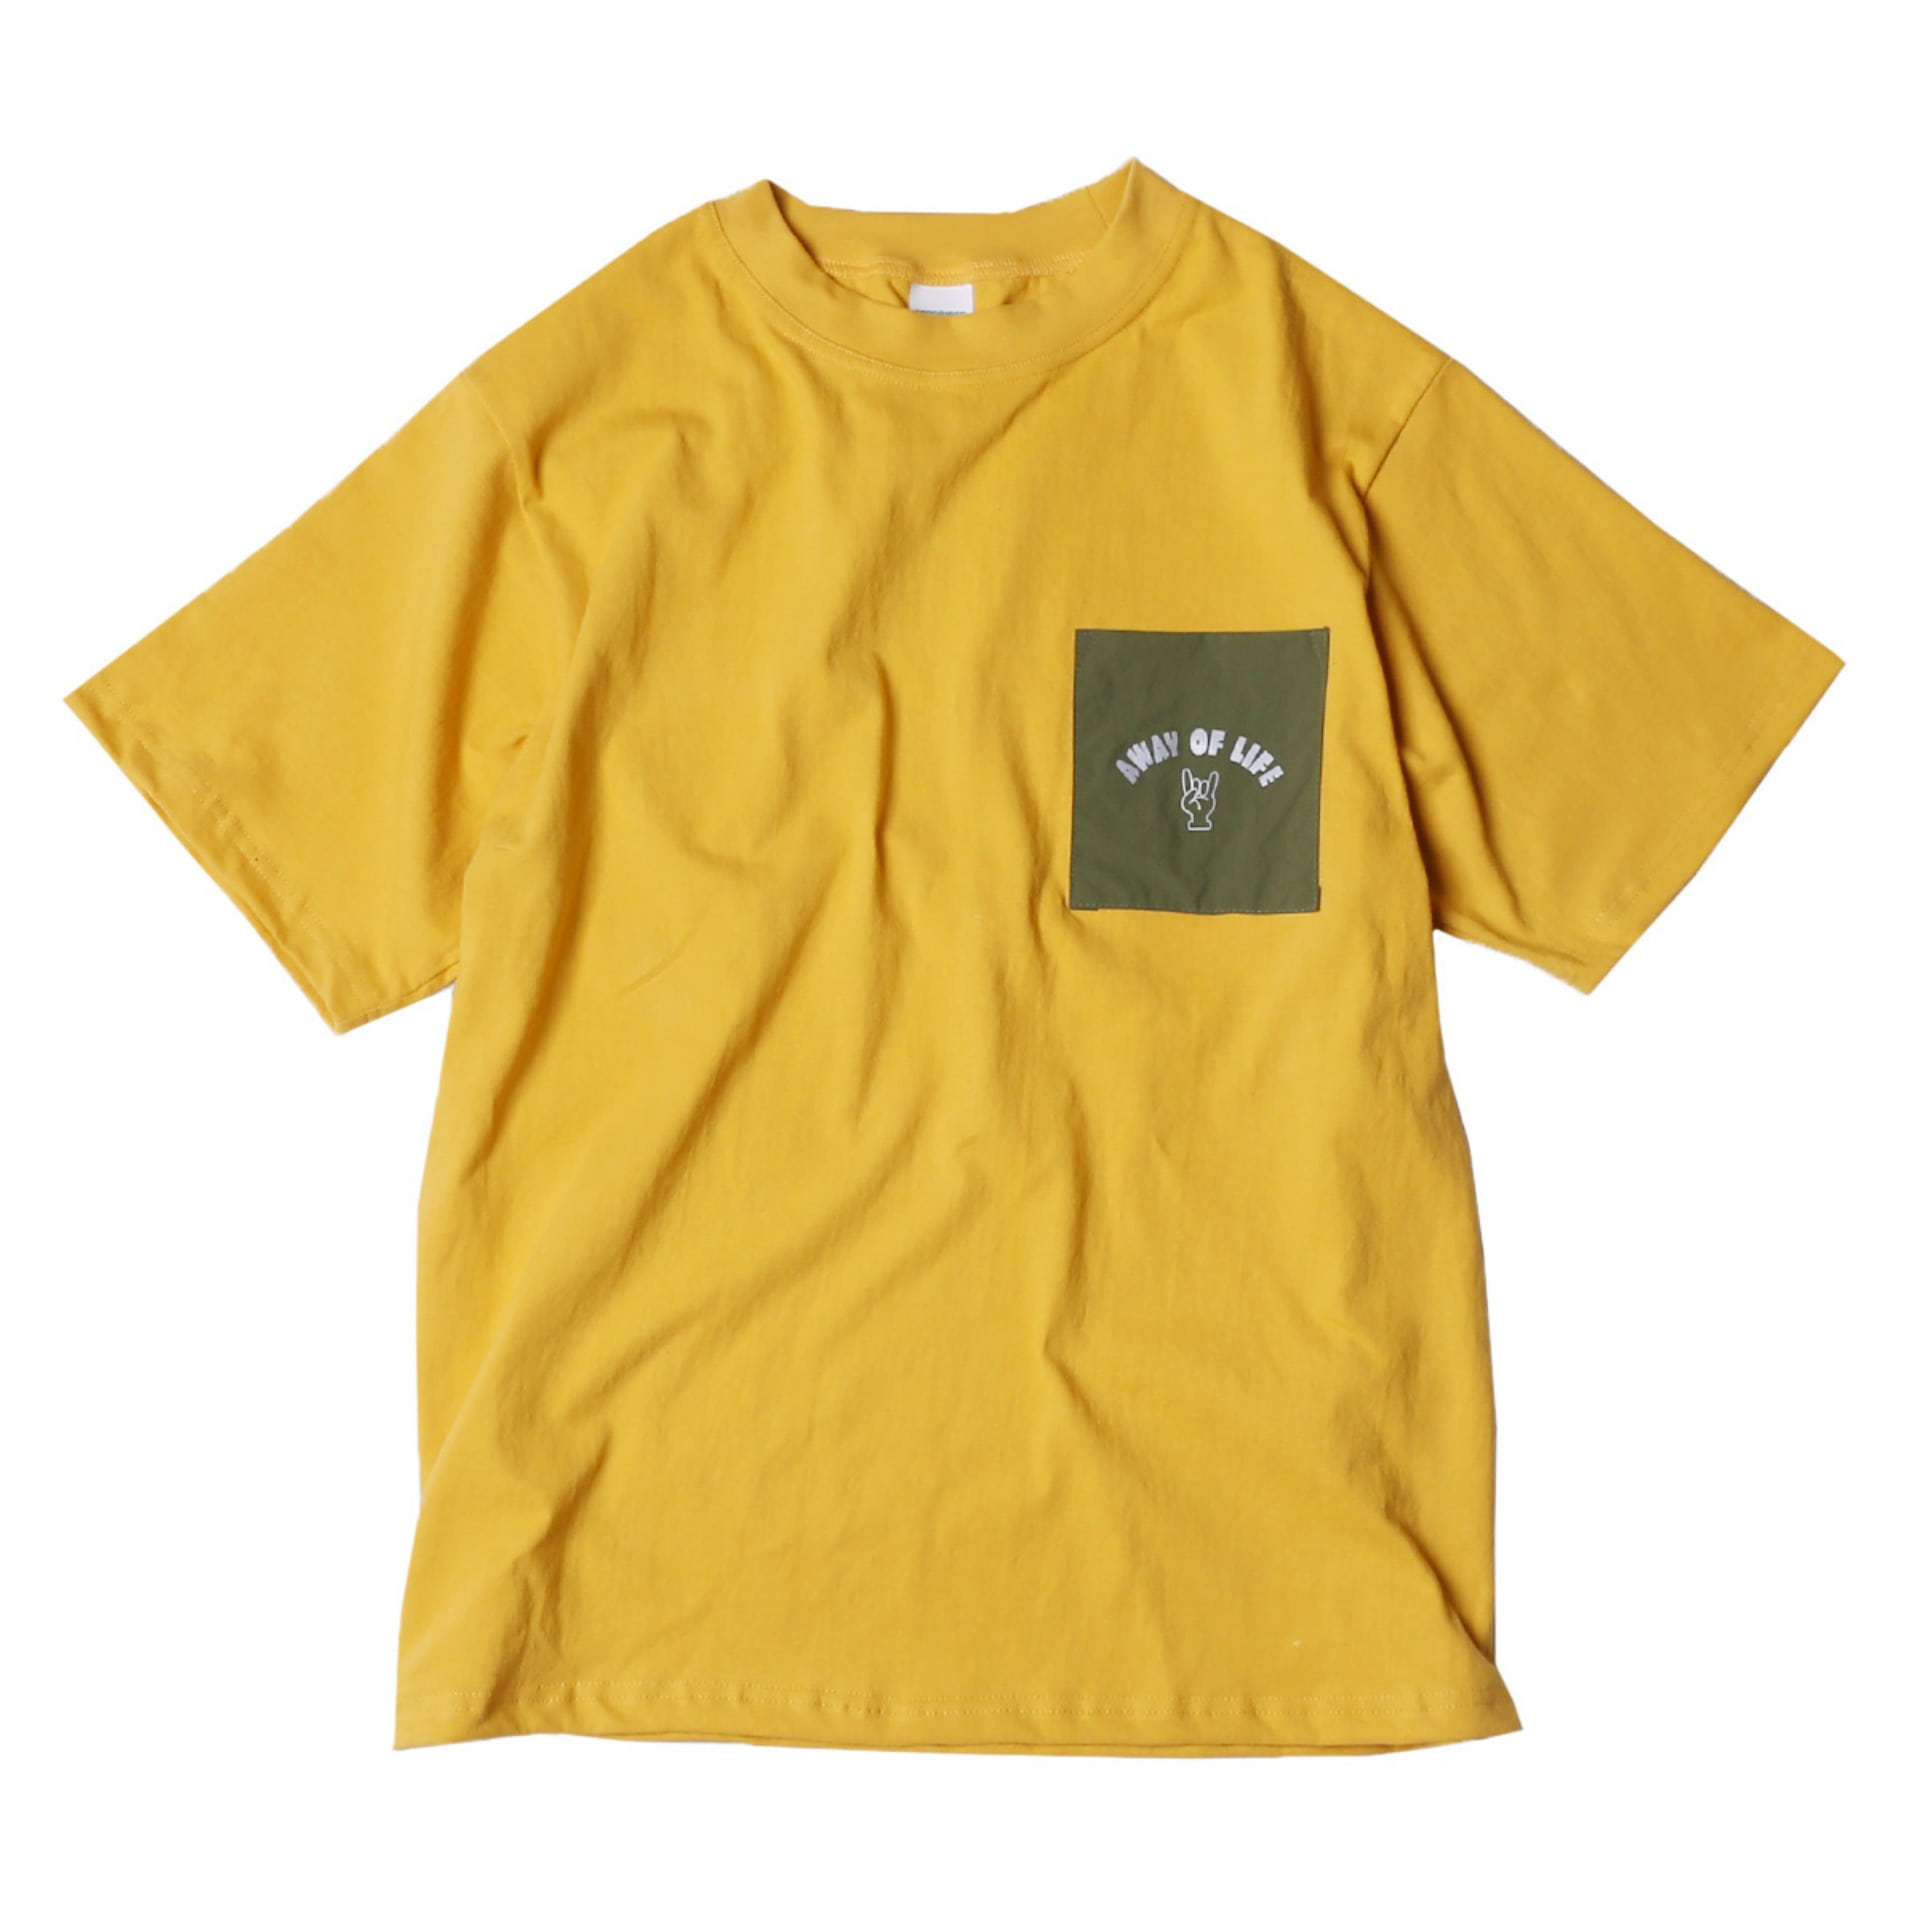 AWAY OF LIFE POCKET T SHIRTS(MUSTARD)